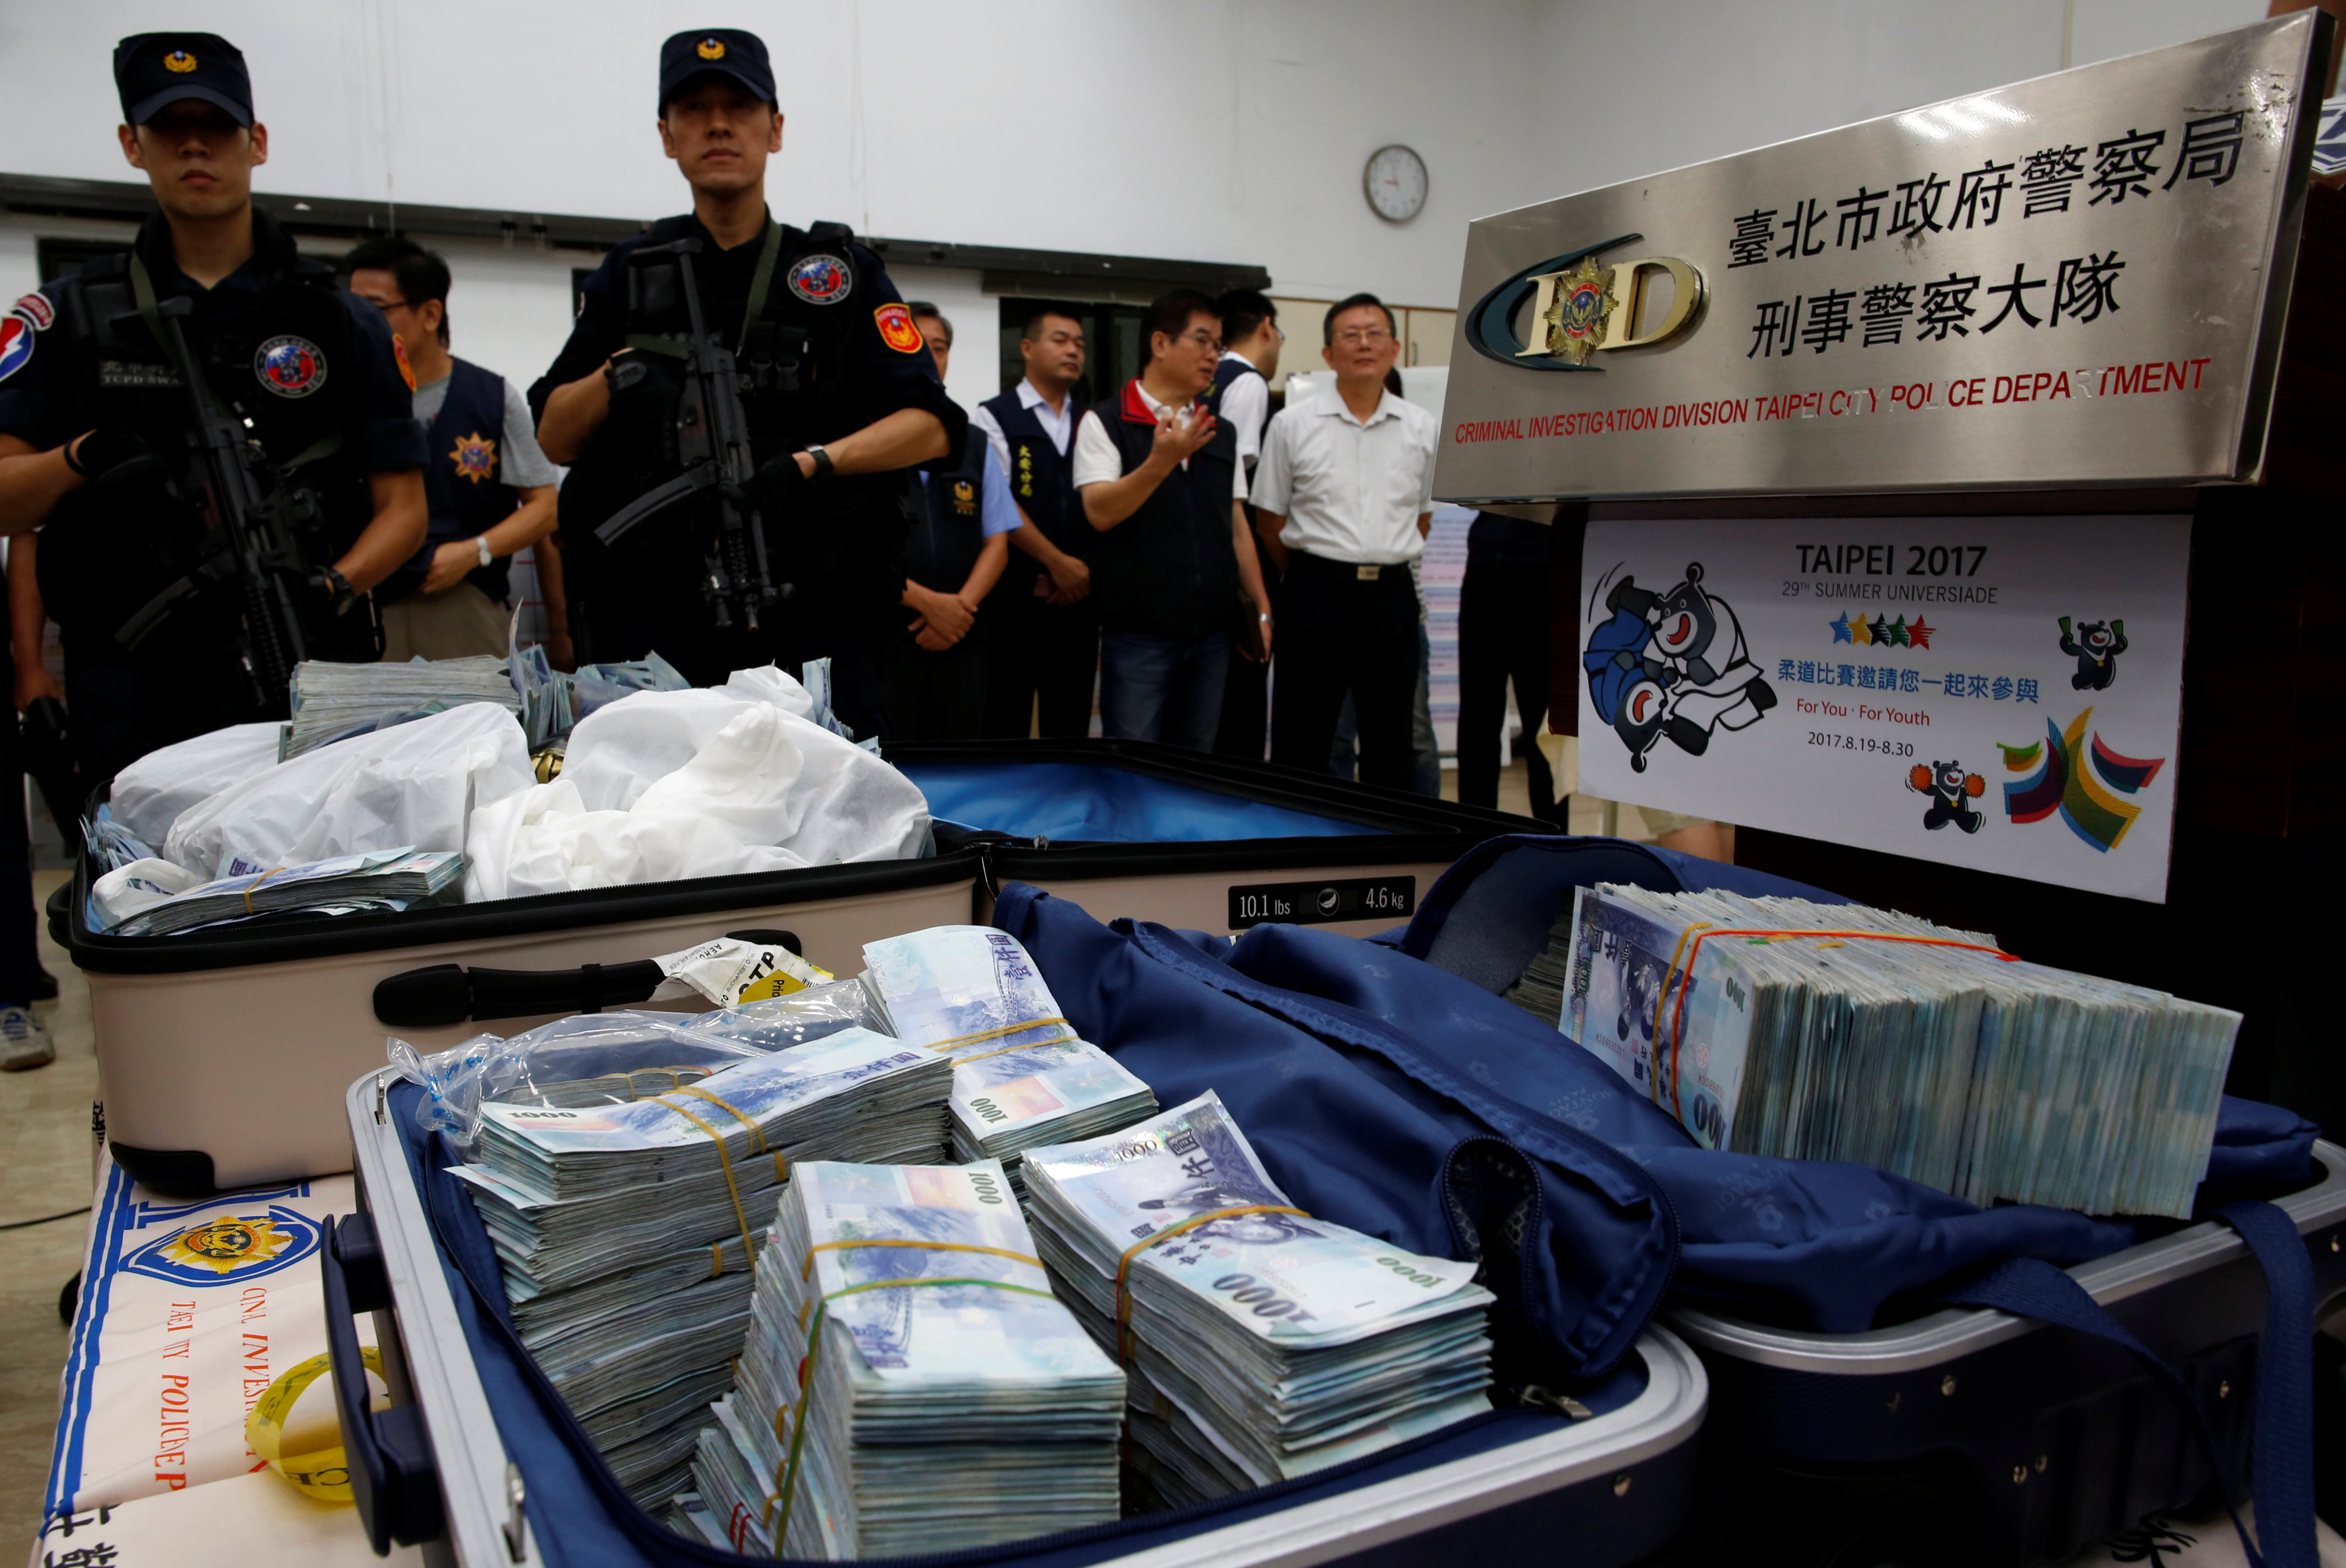 Taiwanese banknotes are displayed after they were found from a hotel room rented by one of the suspects involved in stealing from automated teller machines (ATM) in Taipei